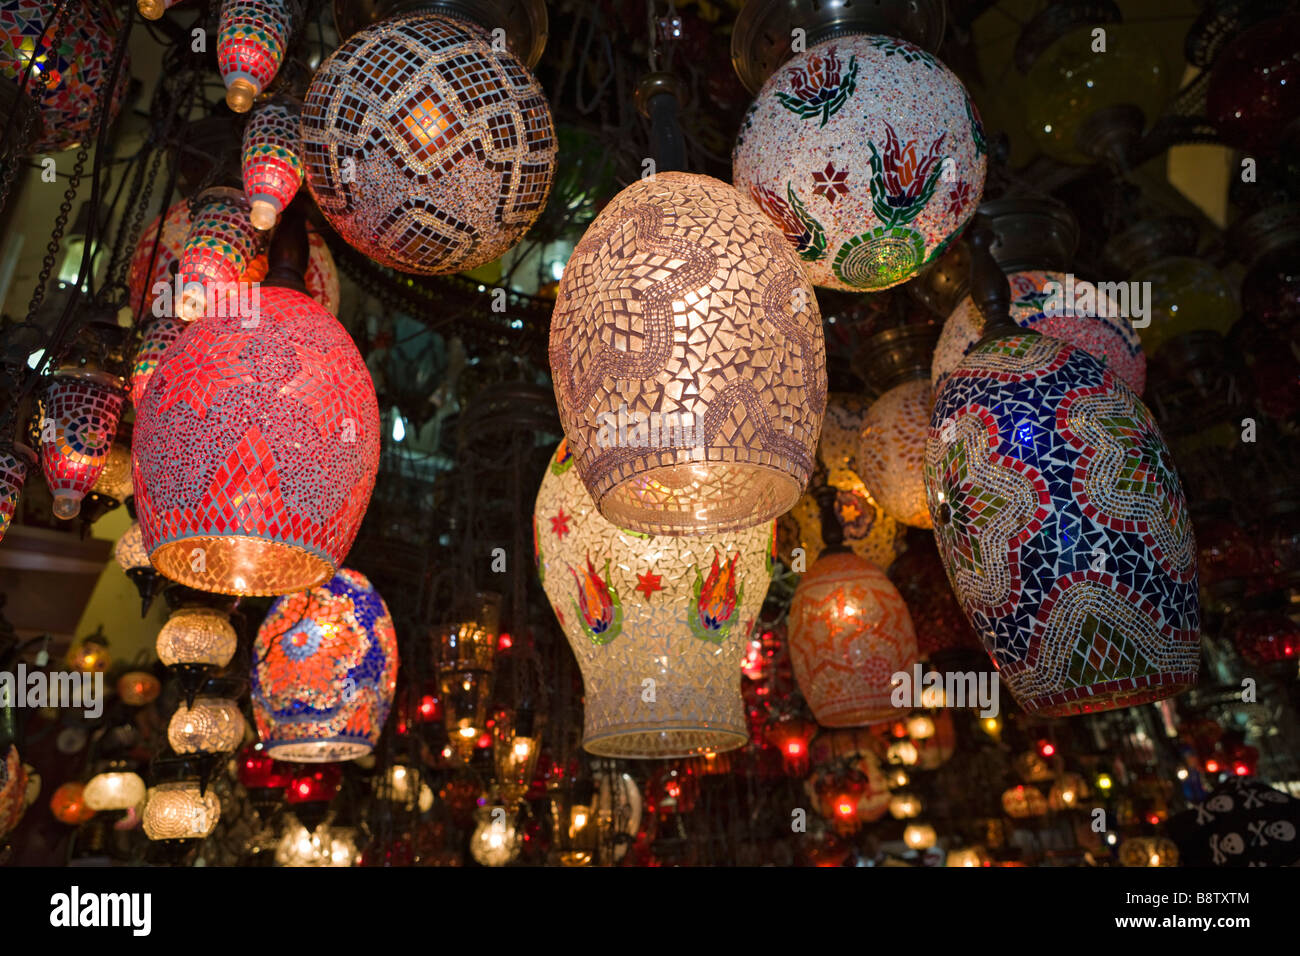 Glass Lamps at Egyptian Bazaar Istanbul Turkey - Stock Image